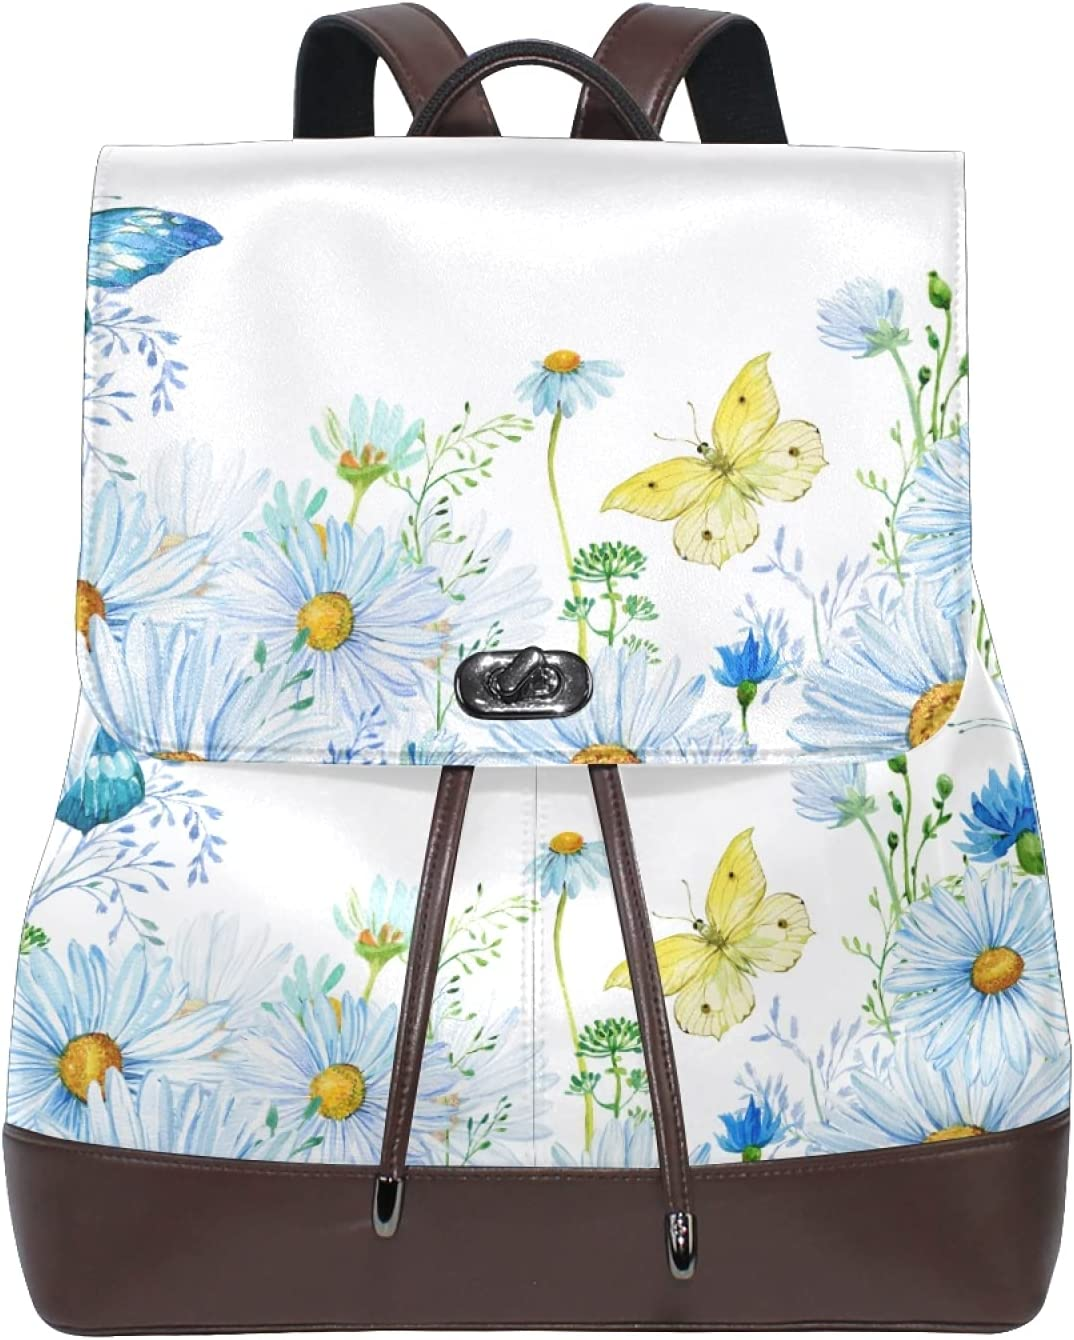 Women Leather Backpack Ladies Fashion Shoulder Bag Large Travel Bag Flower Background Of Wildflowers And Dragonflies